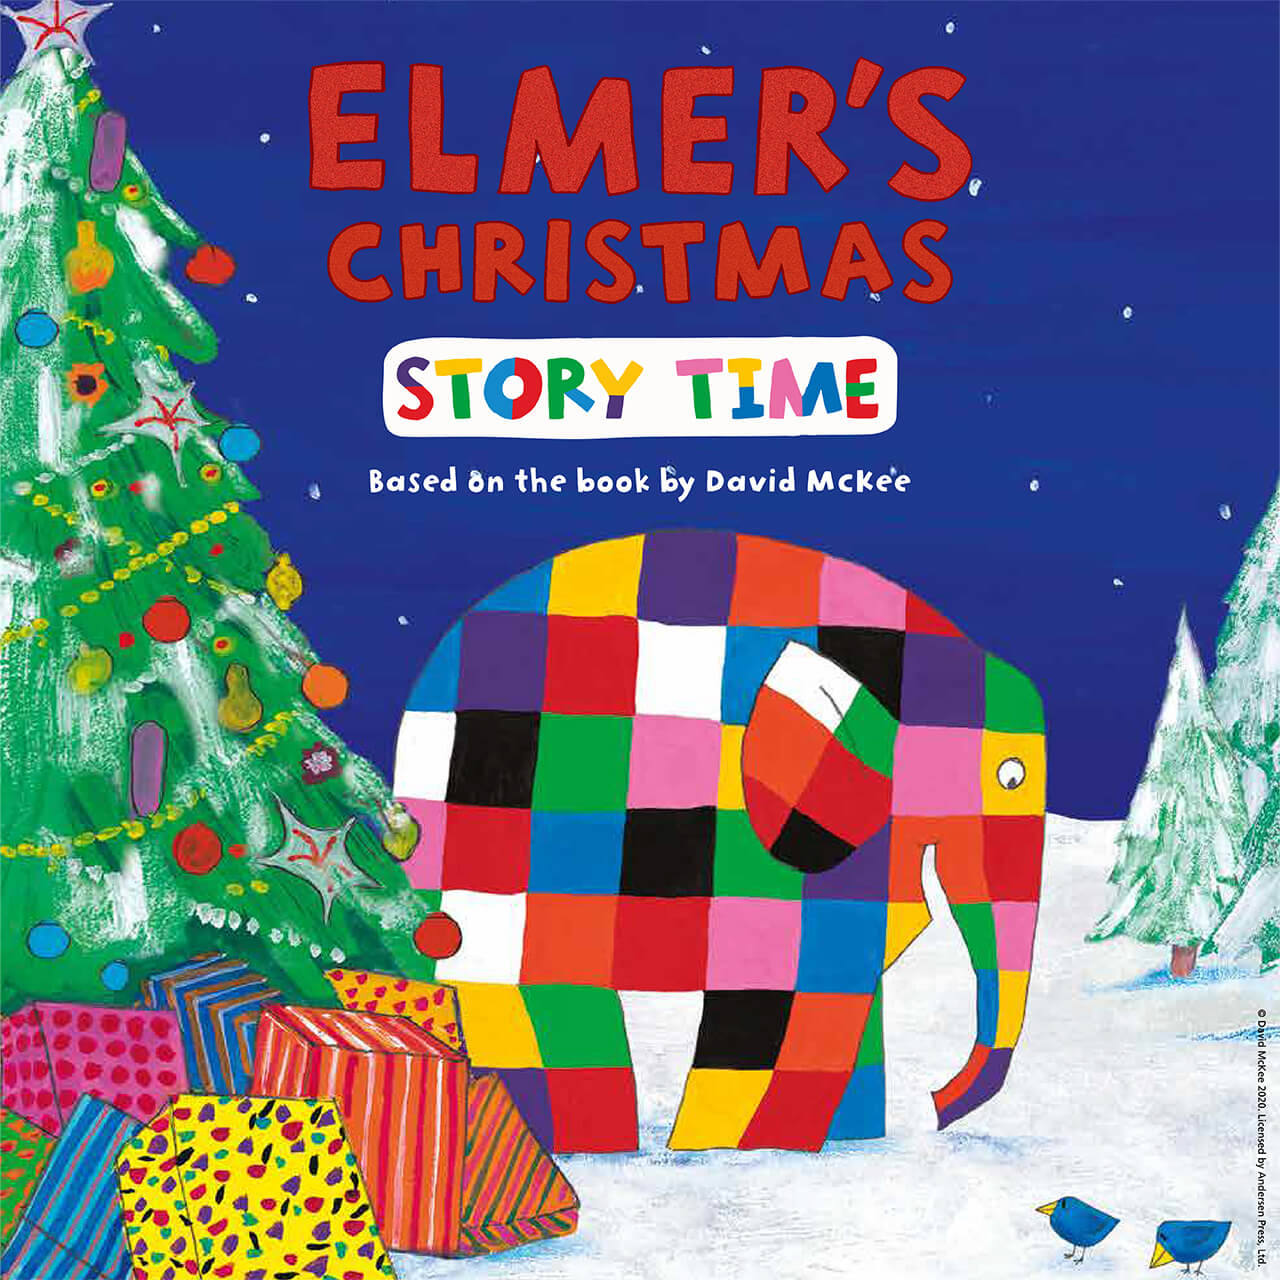 Elmers Christmas Story Time